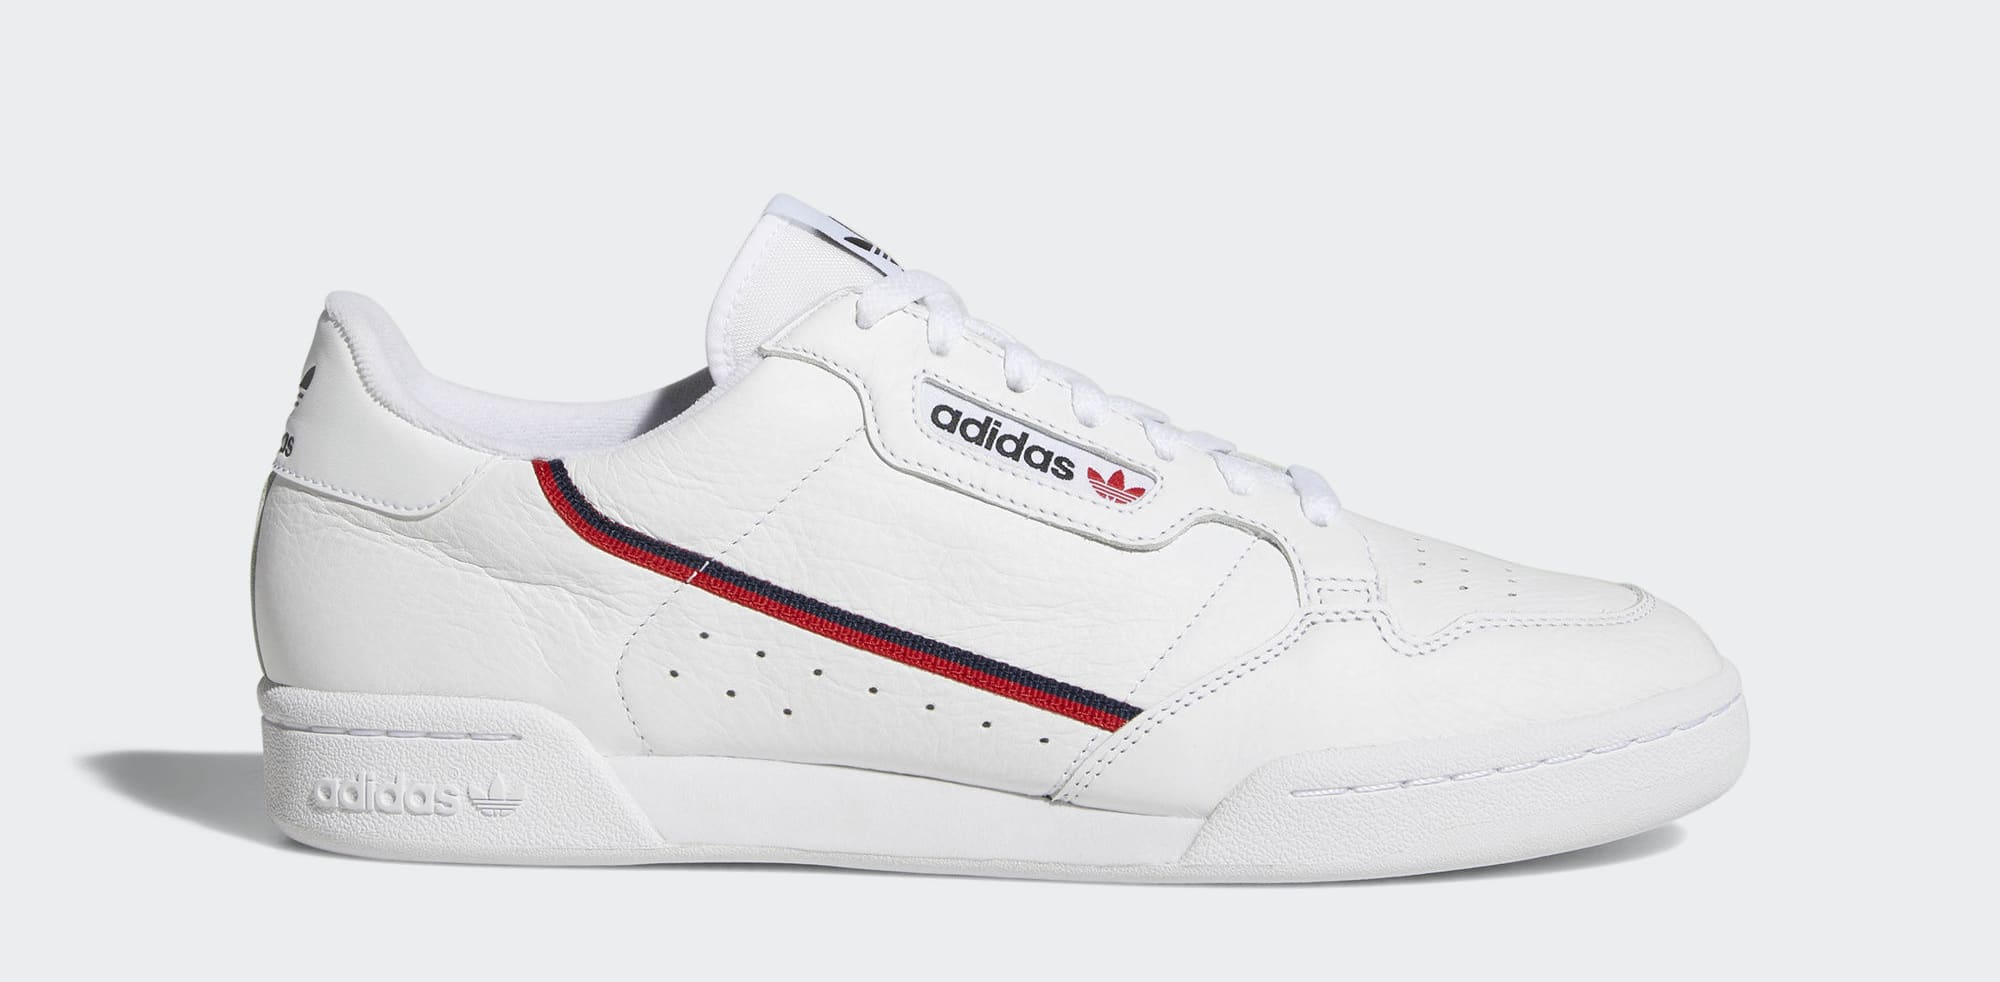 adidas Continental 80's Sneakers In B41674 Oc9FQIw1